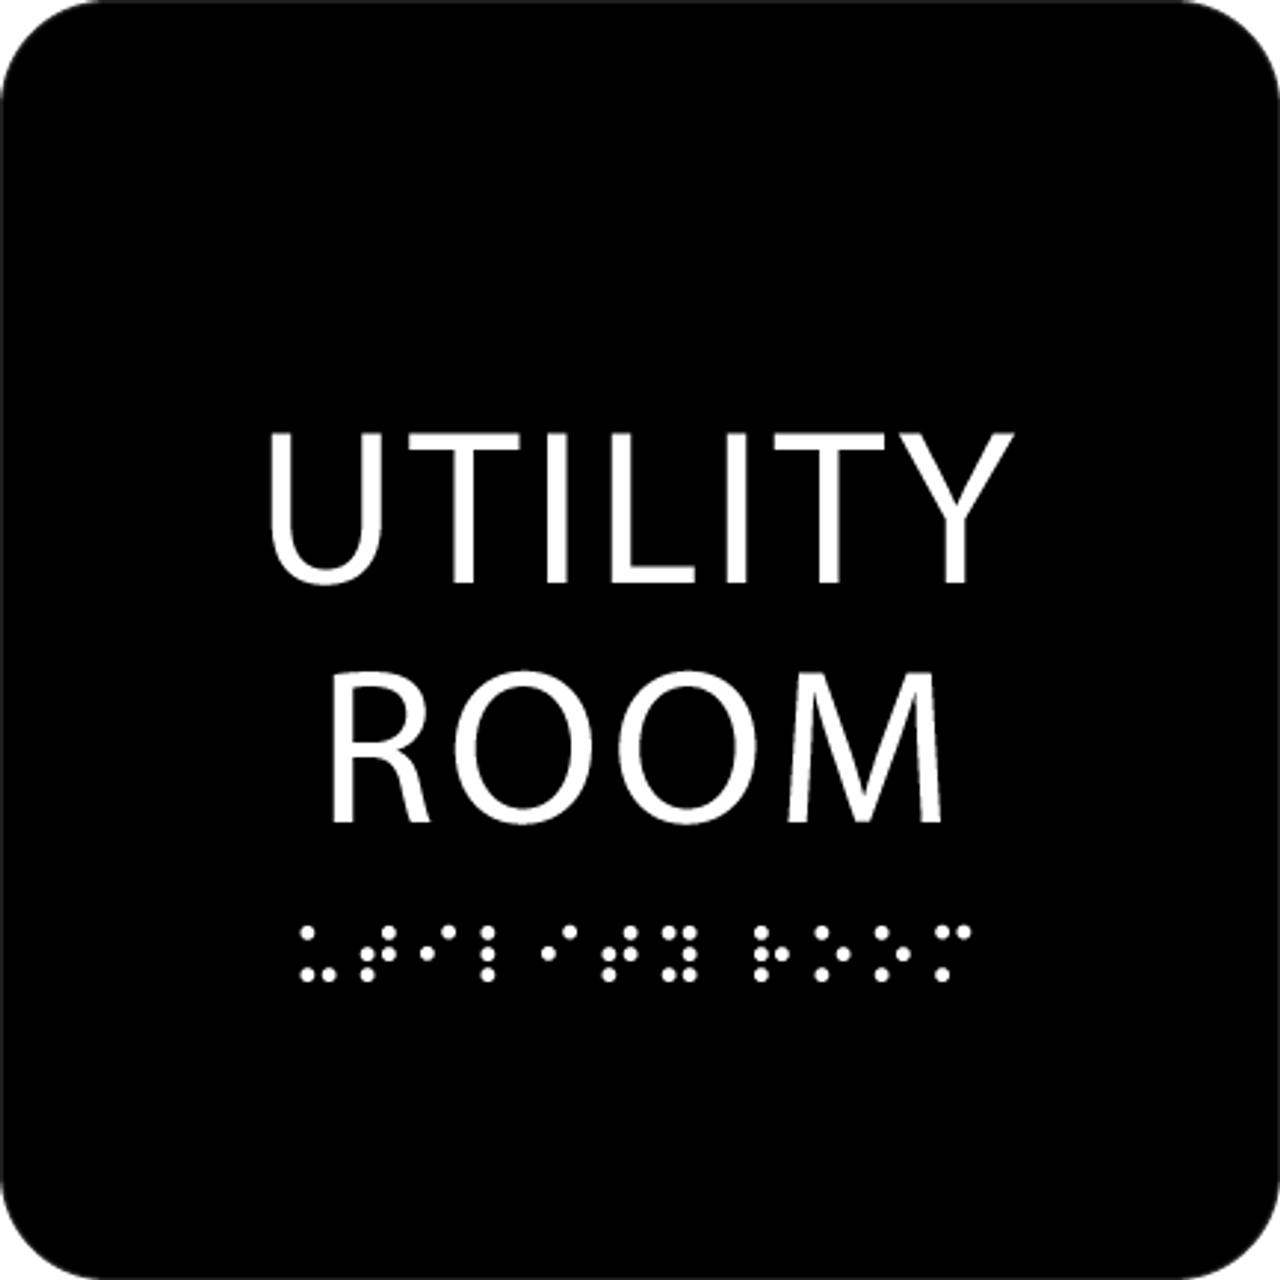 Black Utility Room ADA Sign